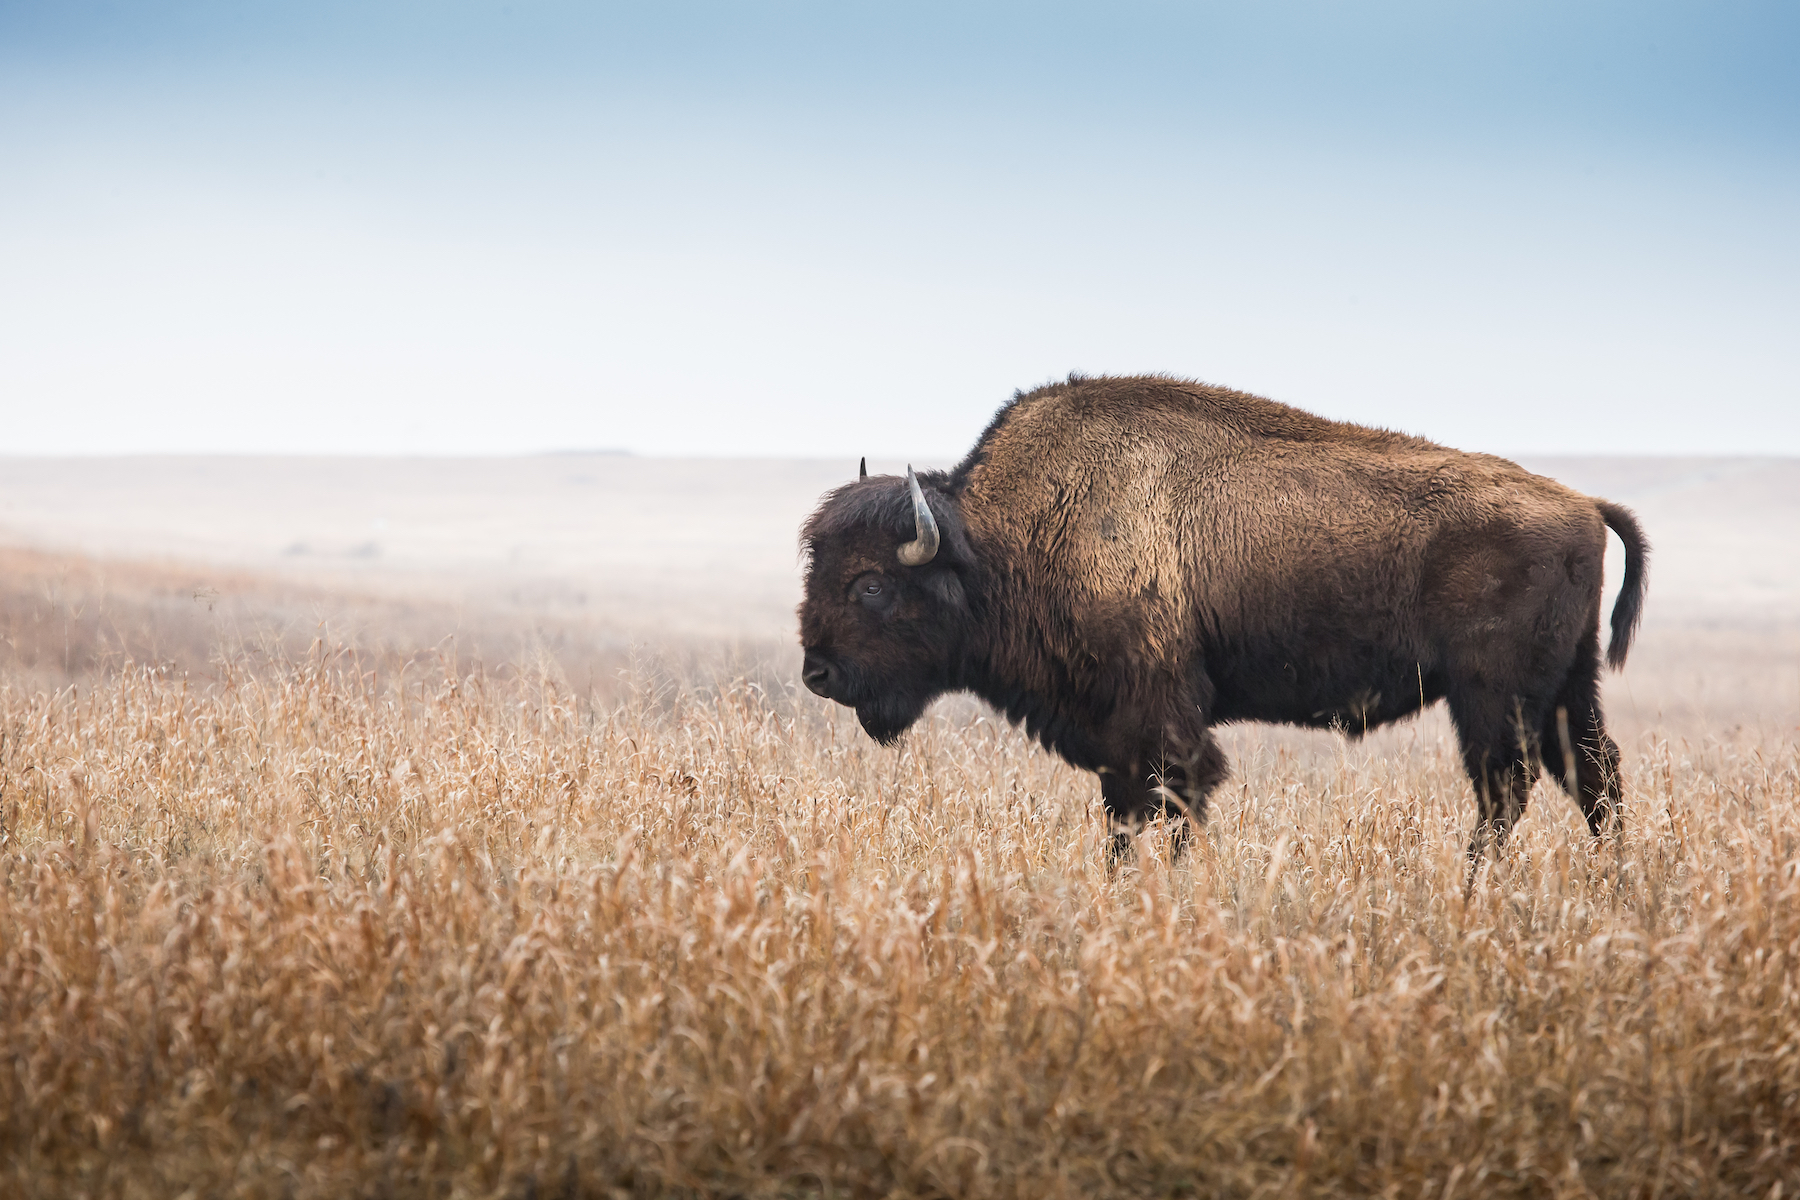 The survival of bison has depended on a complete change of policy and practice for both the American government as well as its citizens.